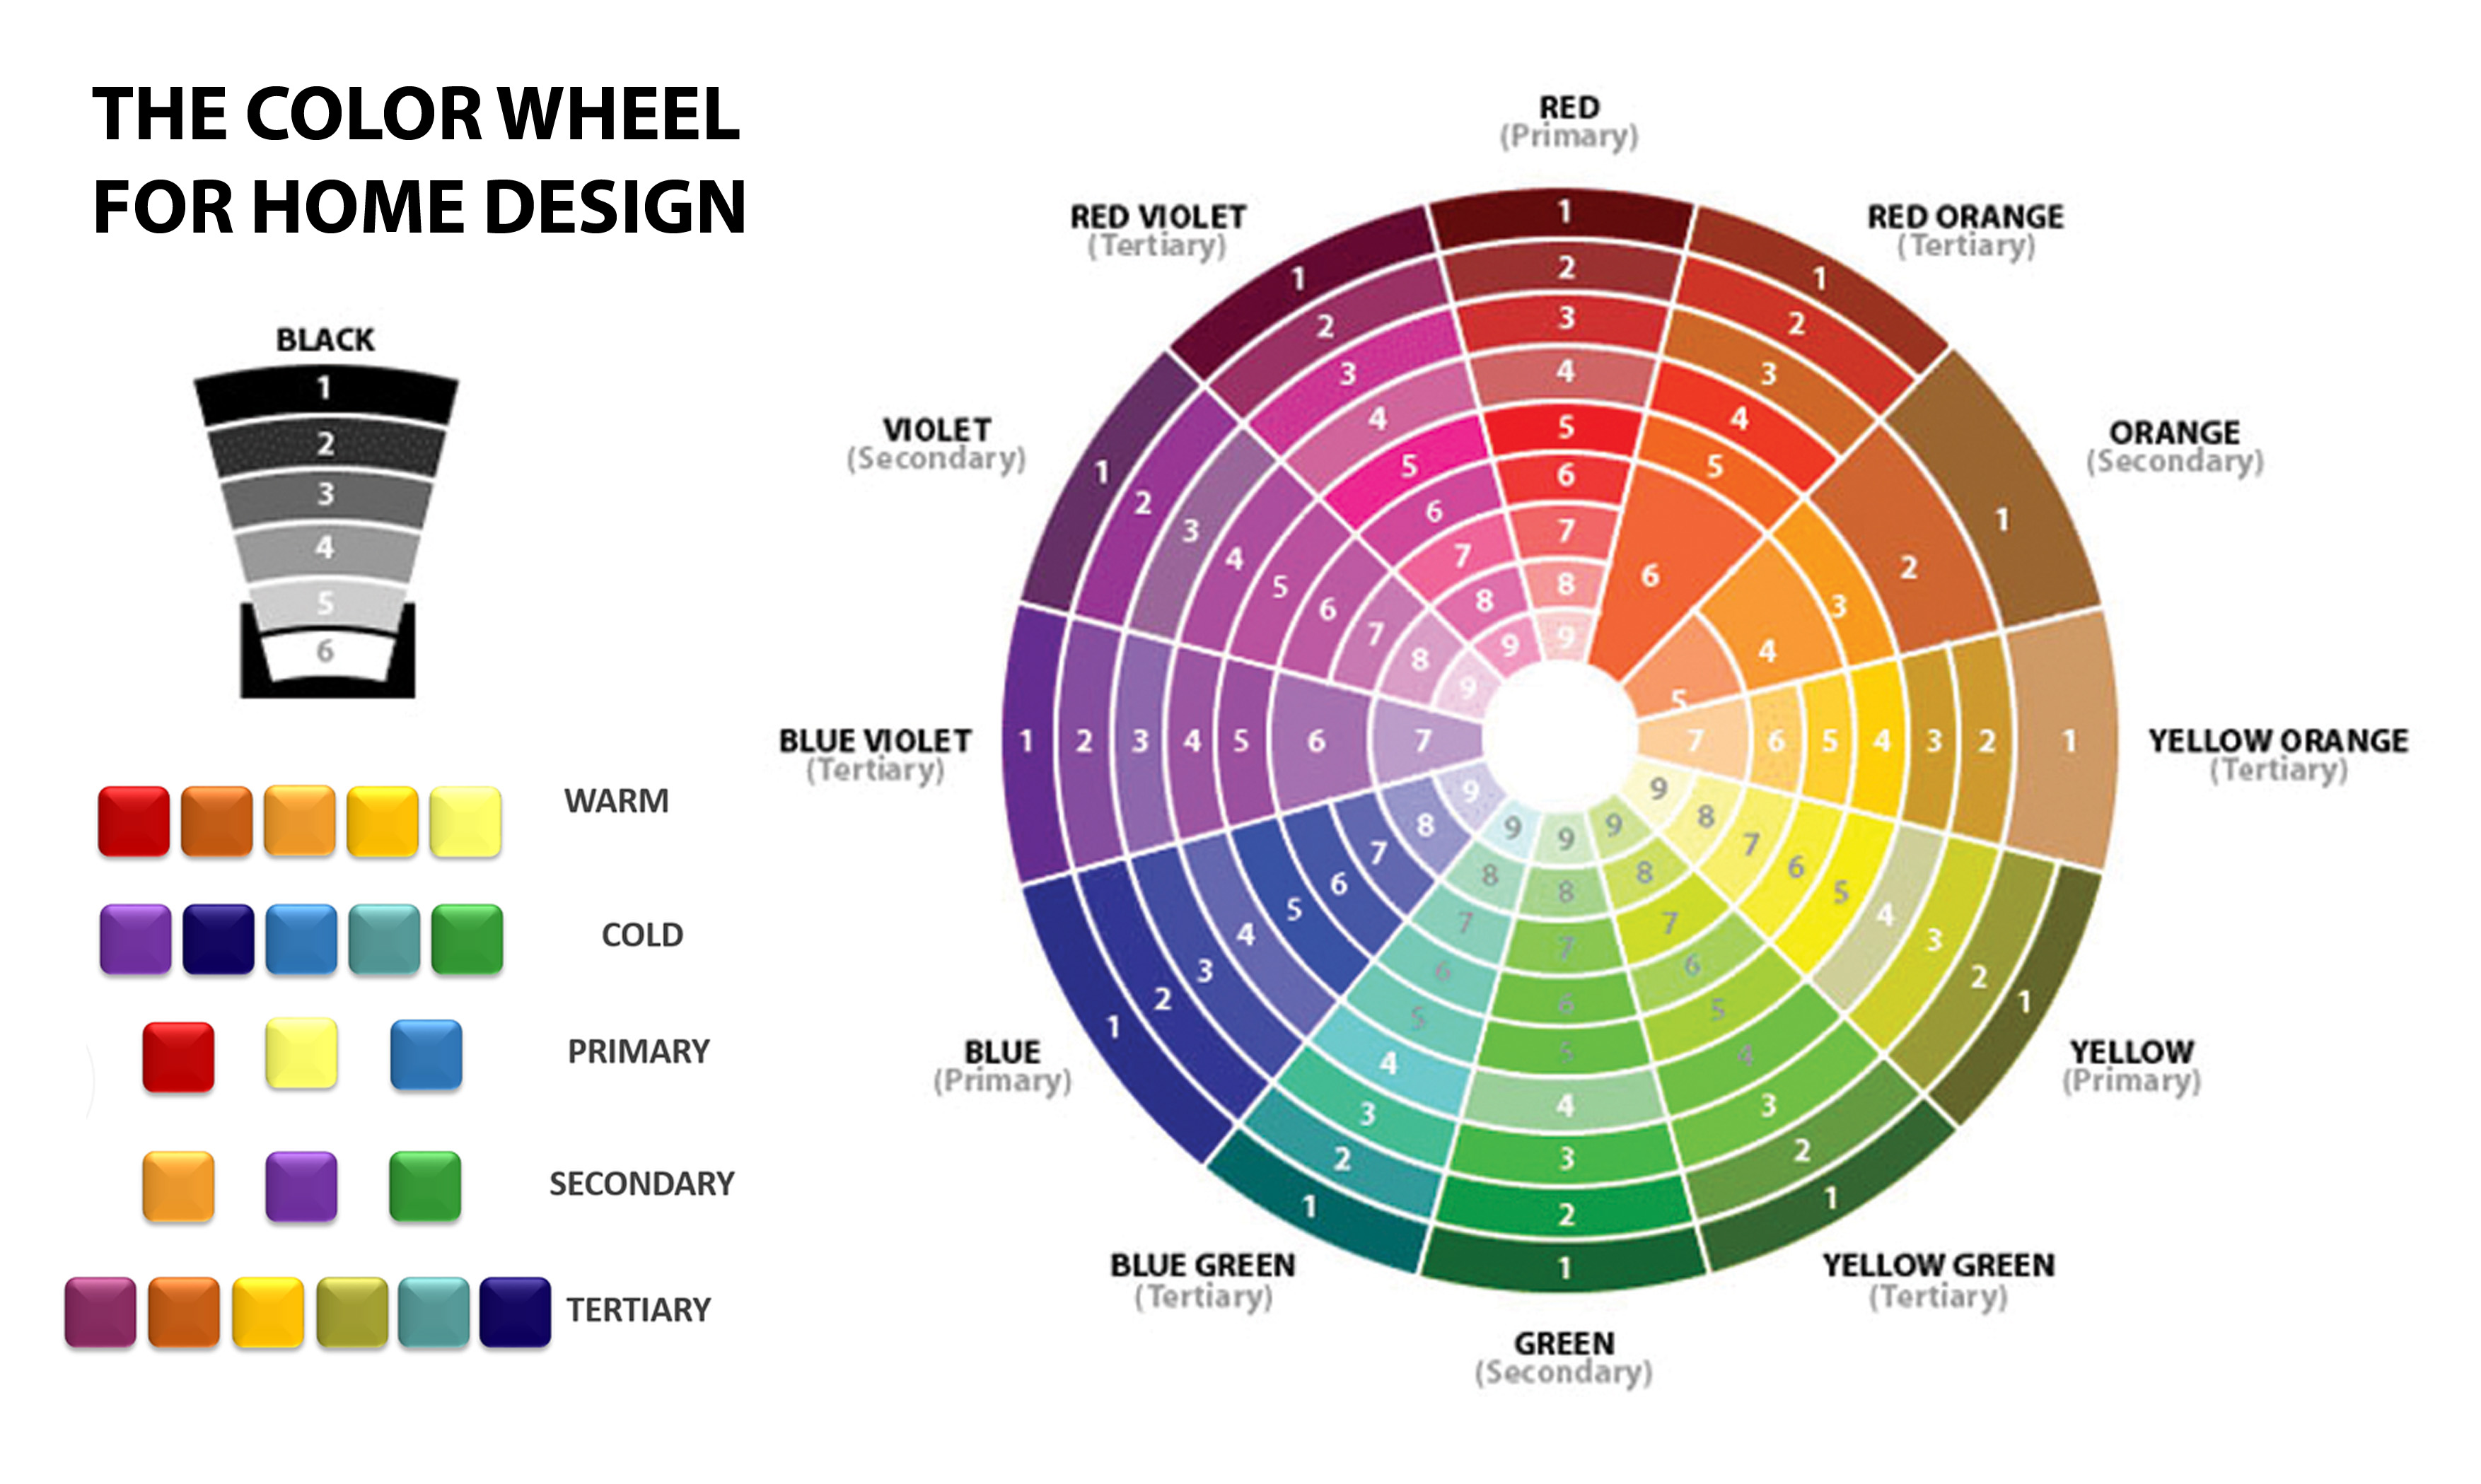 The Color Wheel for Home Design